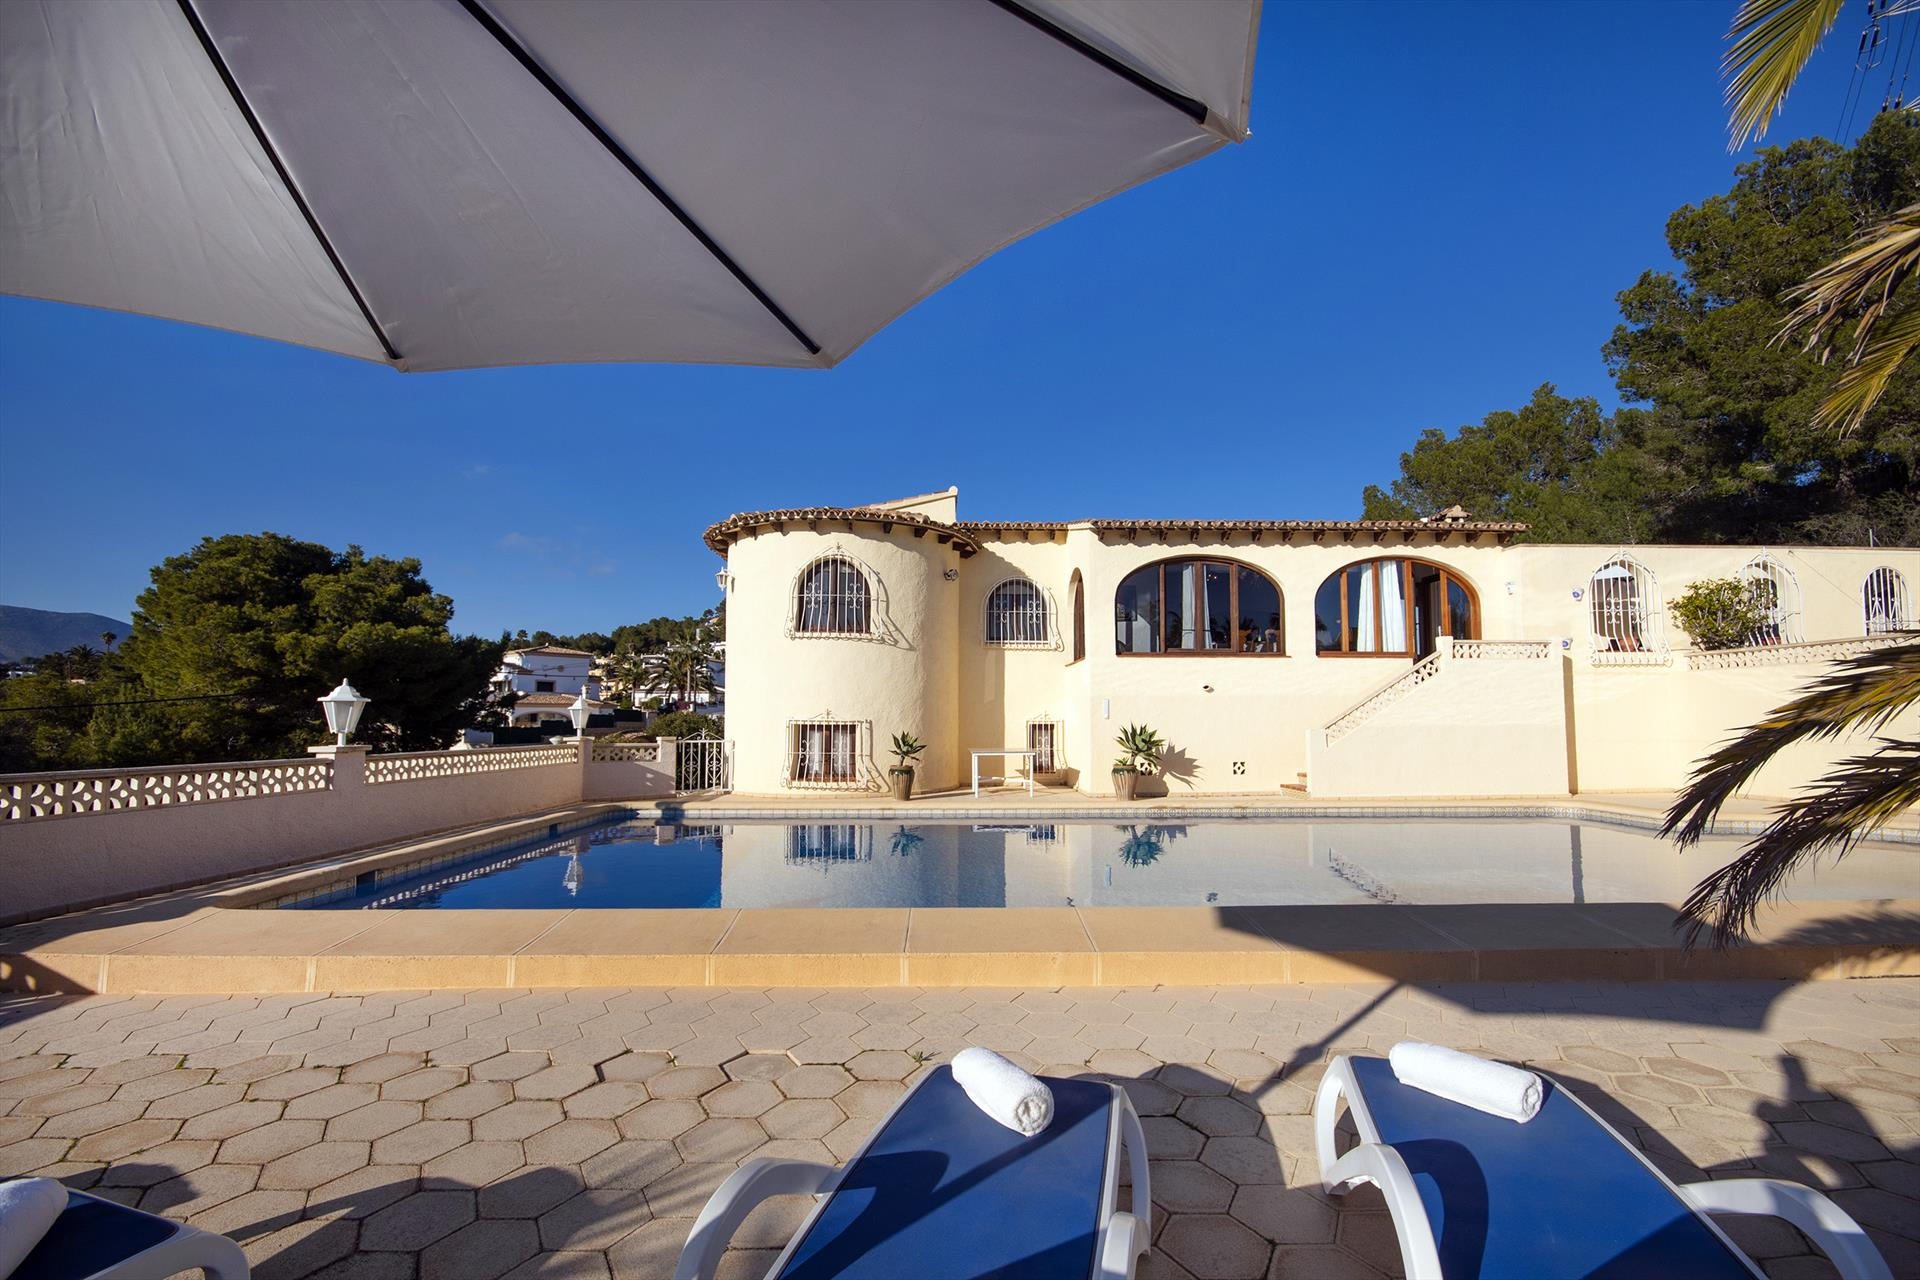 Heno 6,Large and nice villa in Calpe, on the Costa Blanca, Spain  with private pool for 6 persons.....